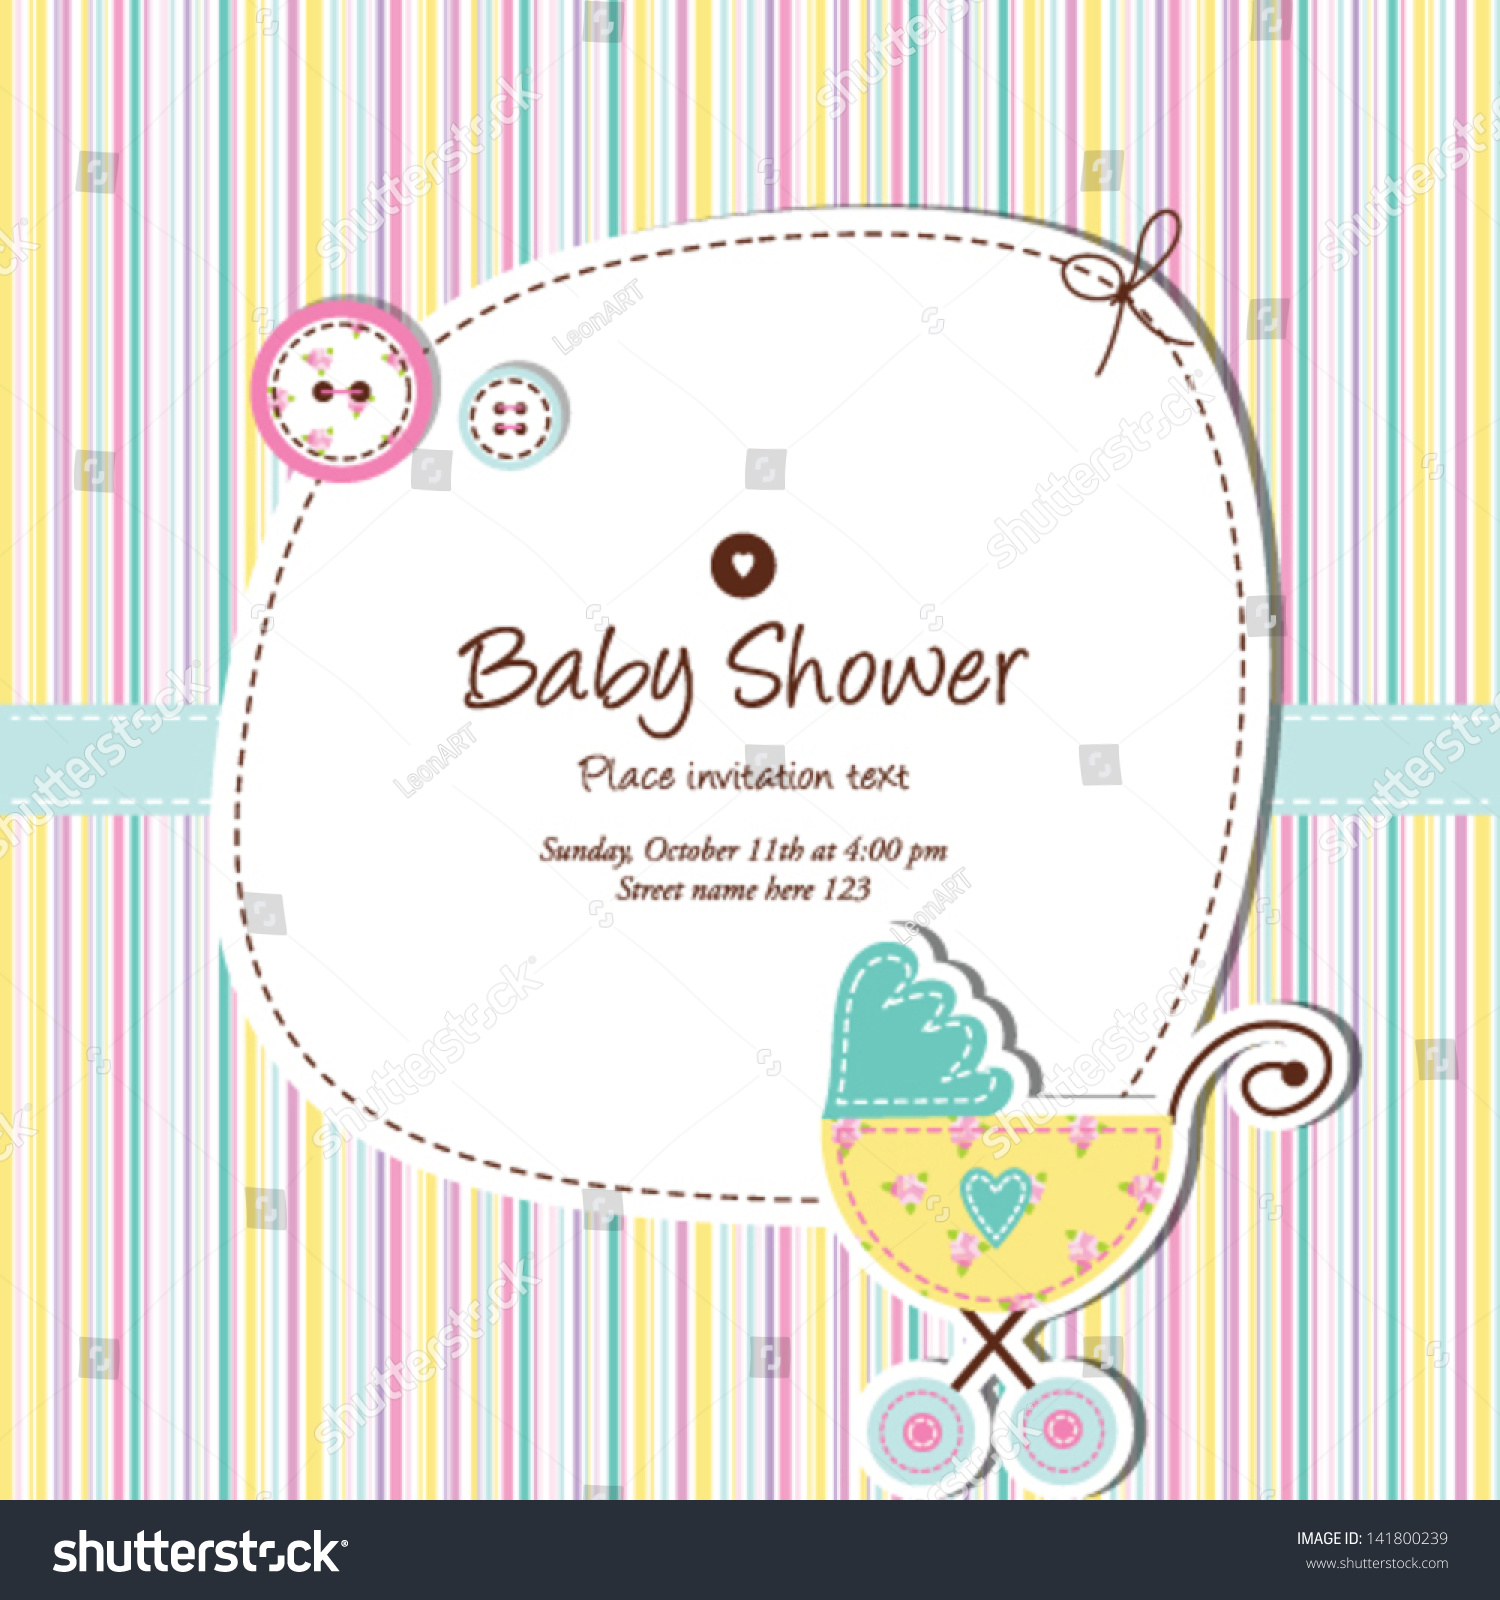 Baby Boy Shower Invitation Design Element For Greeting Card